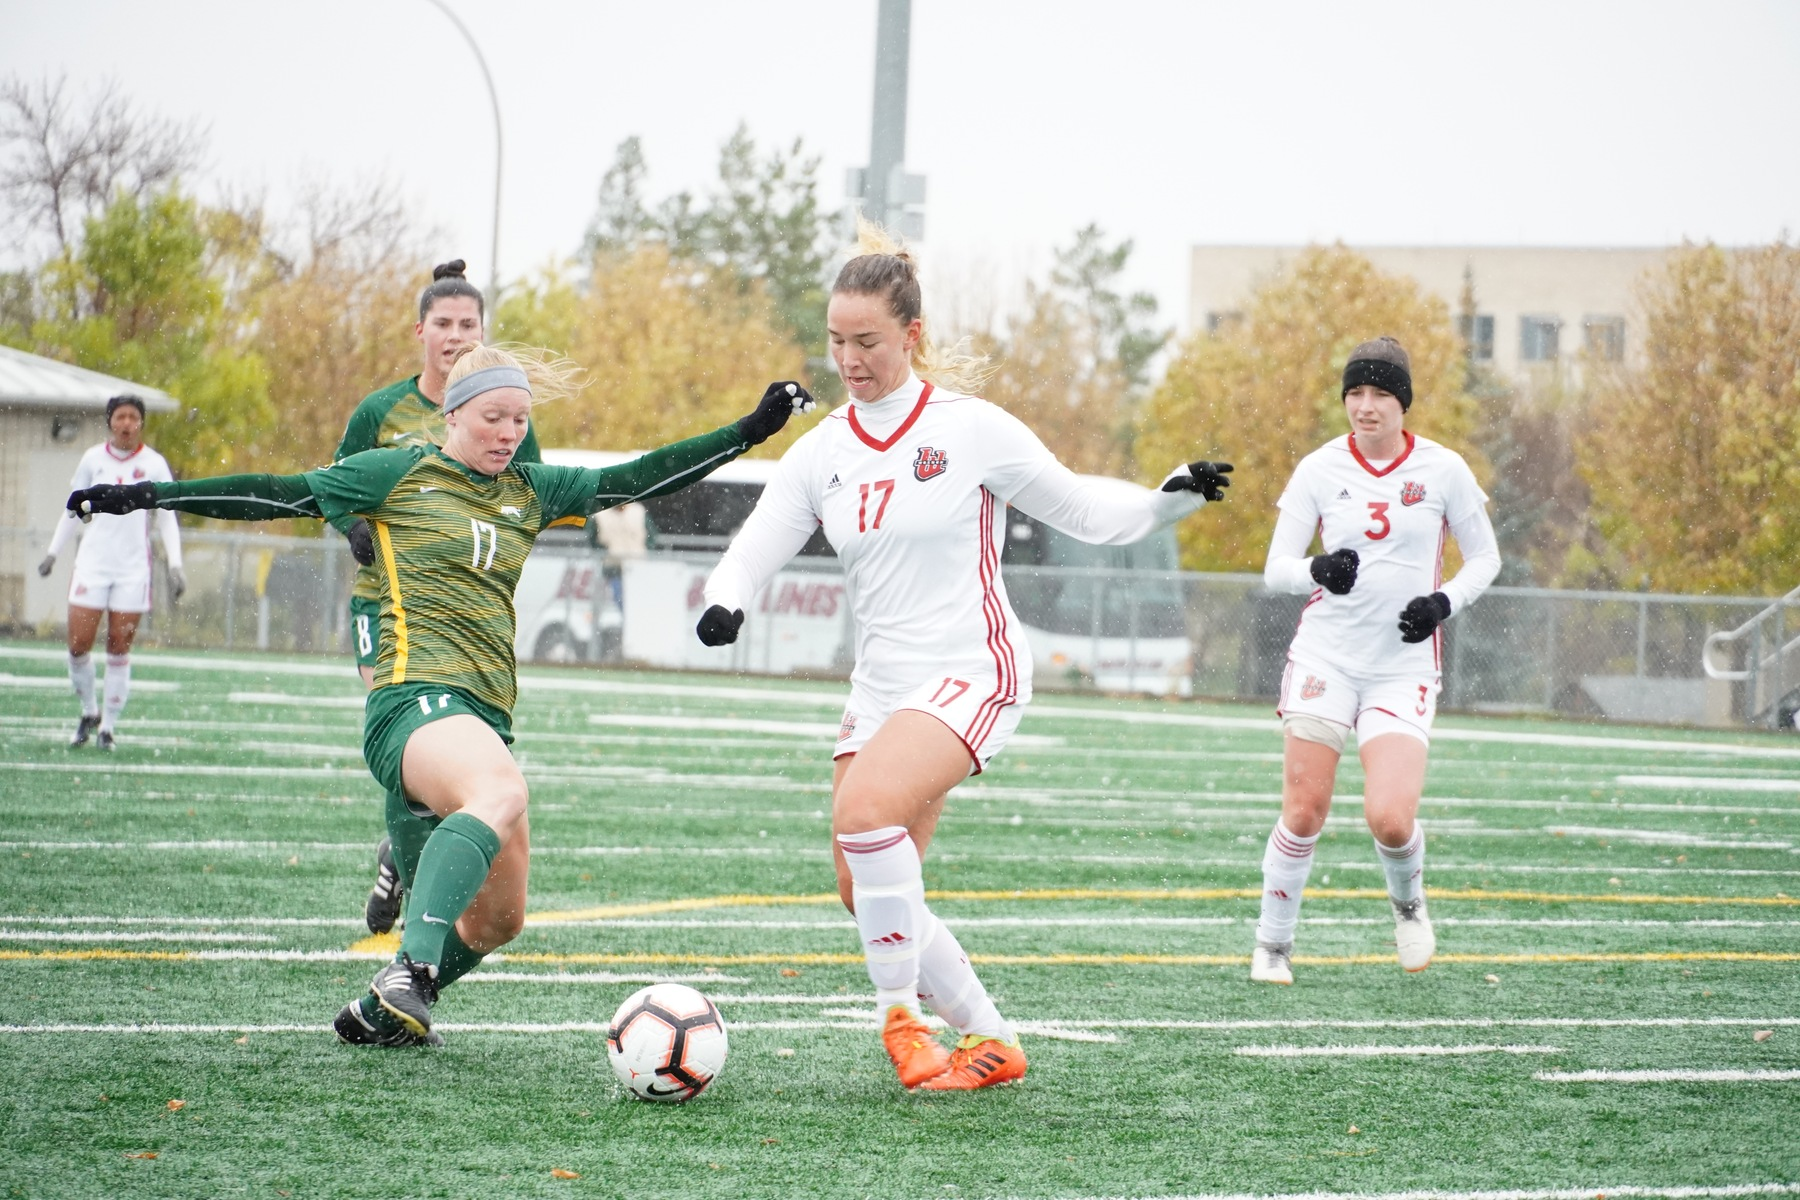 Winnipeg's Nicole Redekopp (17) challenges for the ball during Wesmen women's soccer action in Regina on Sunday, Sept. 29, 2019. (Regina Cougars photo)